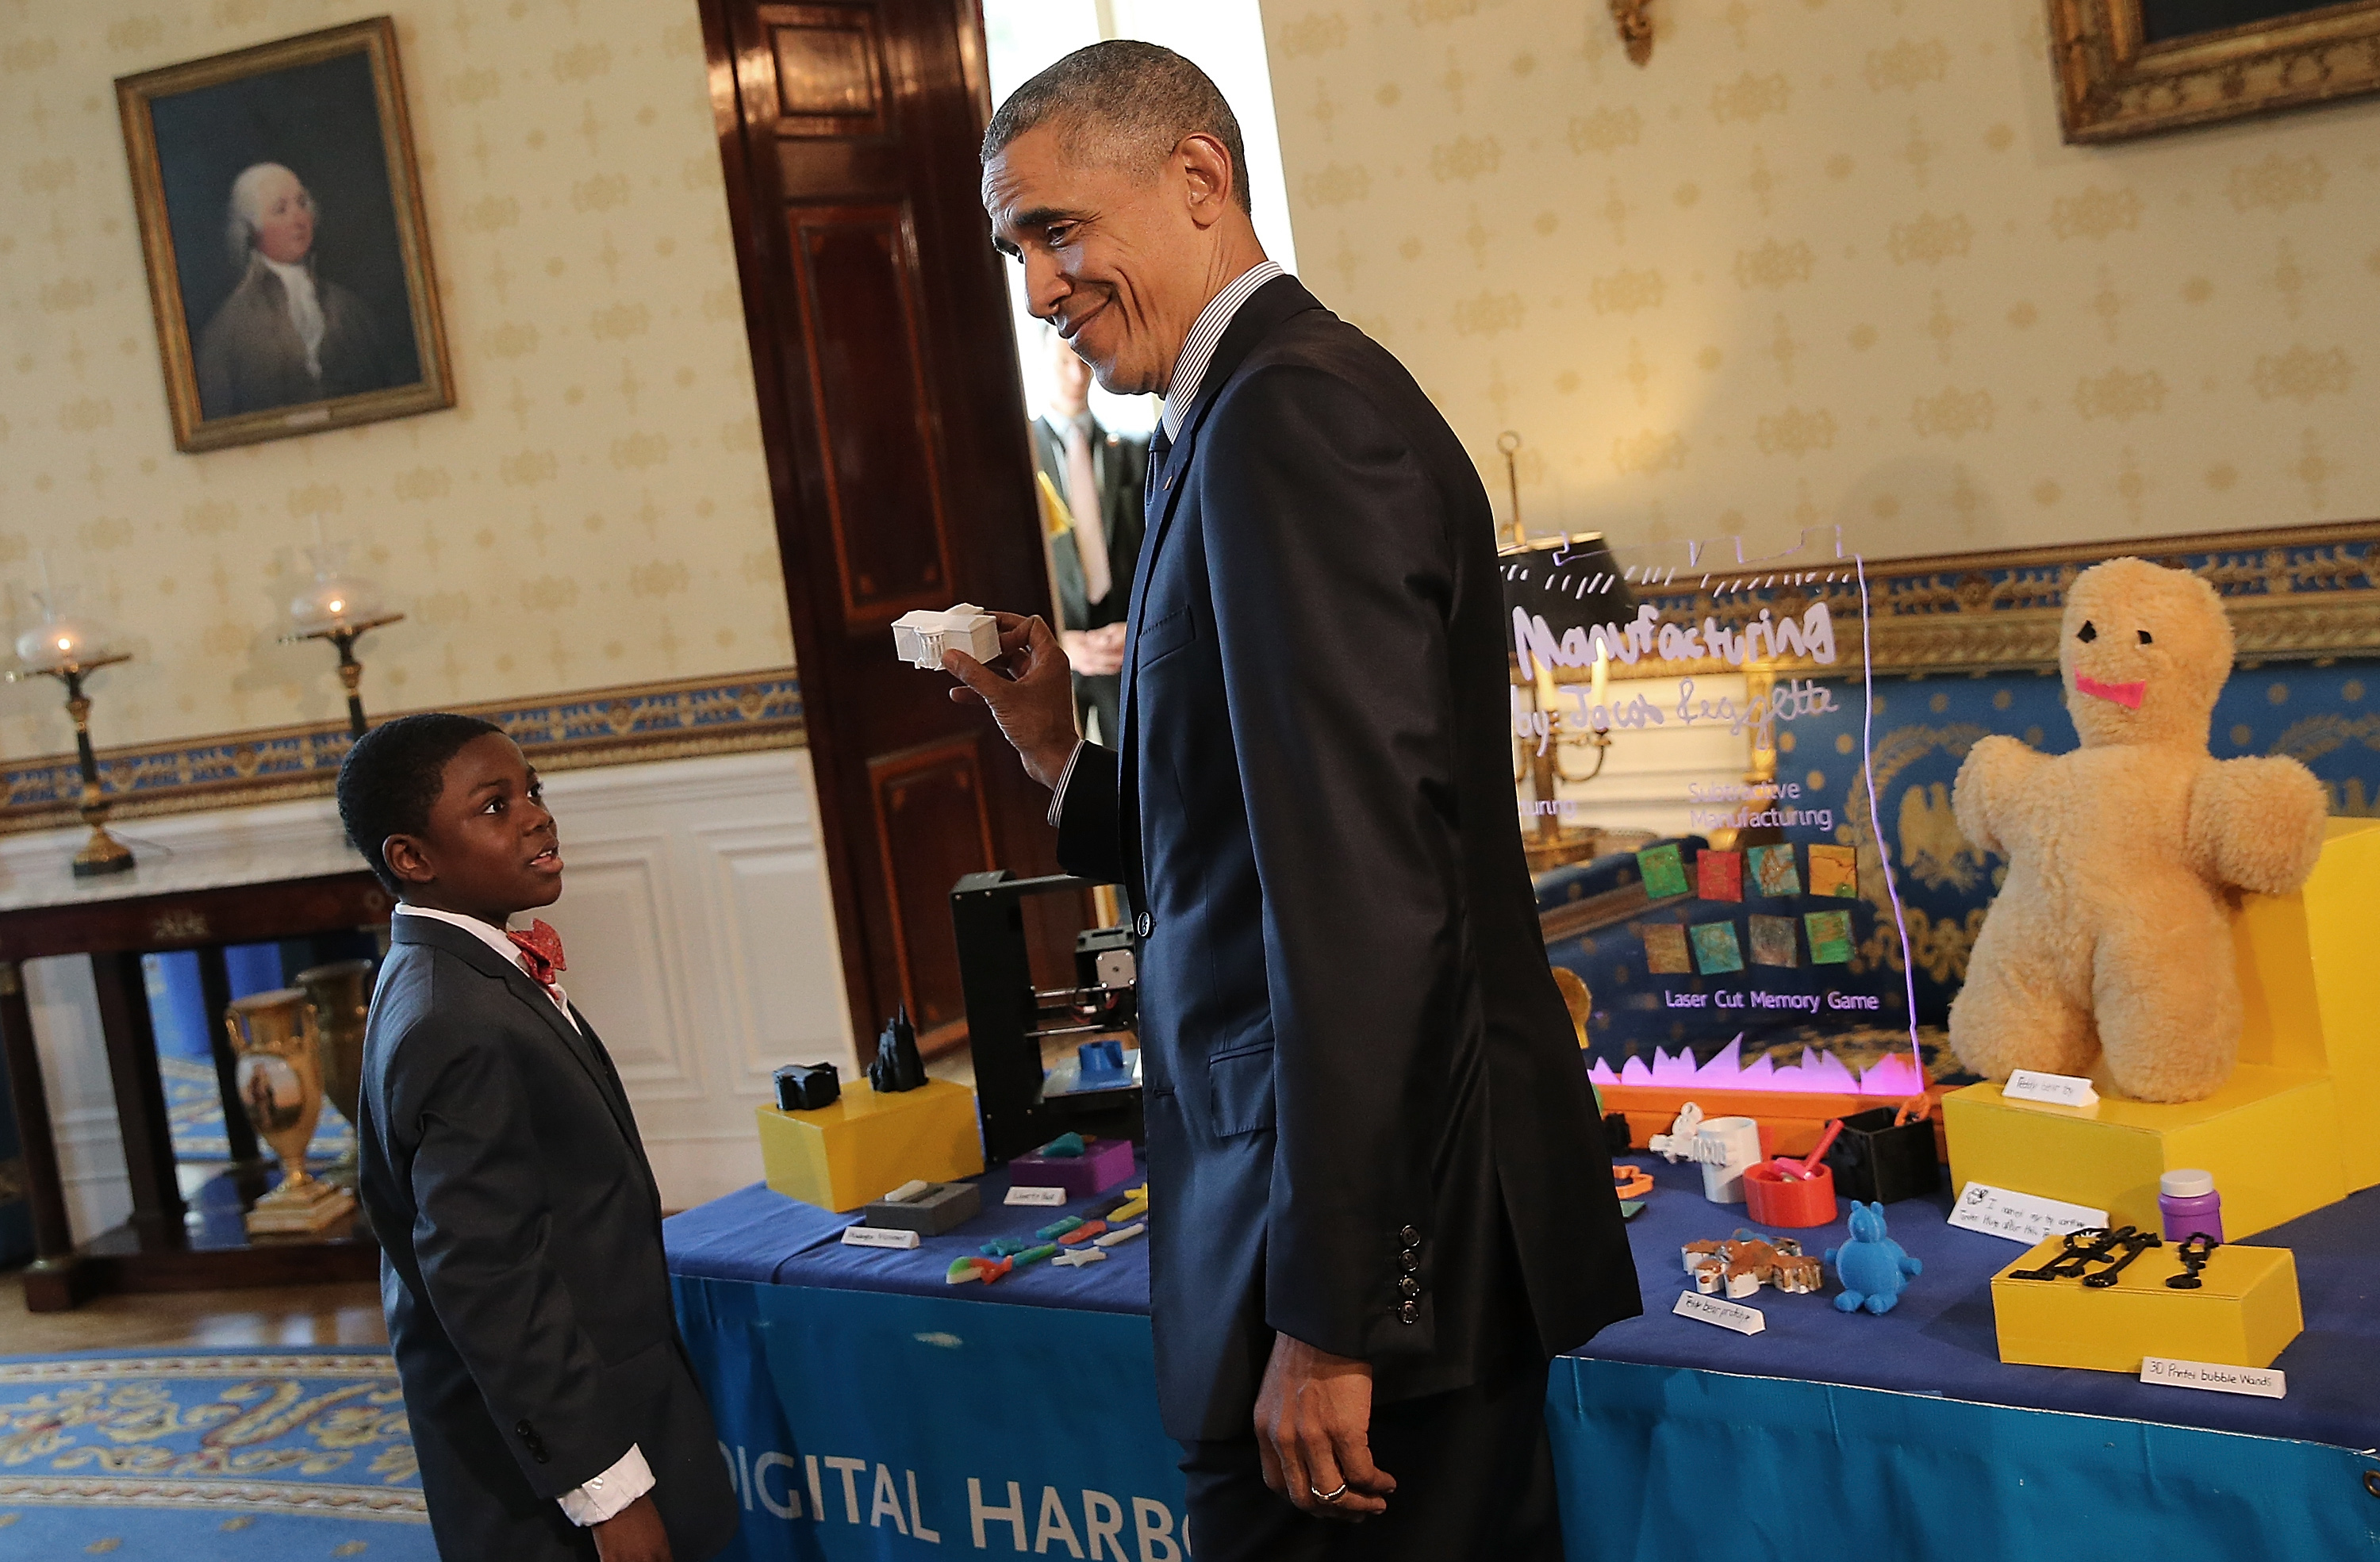 President Obama Attends White House Science Fair